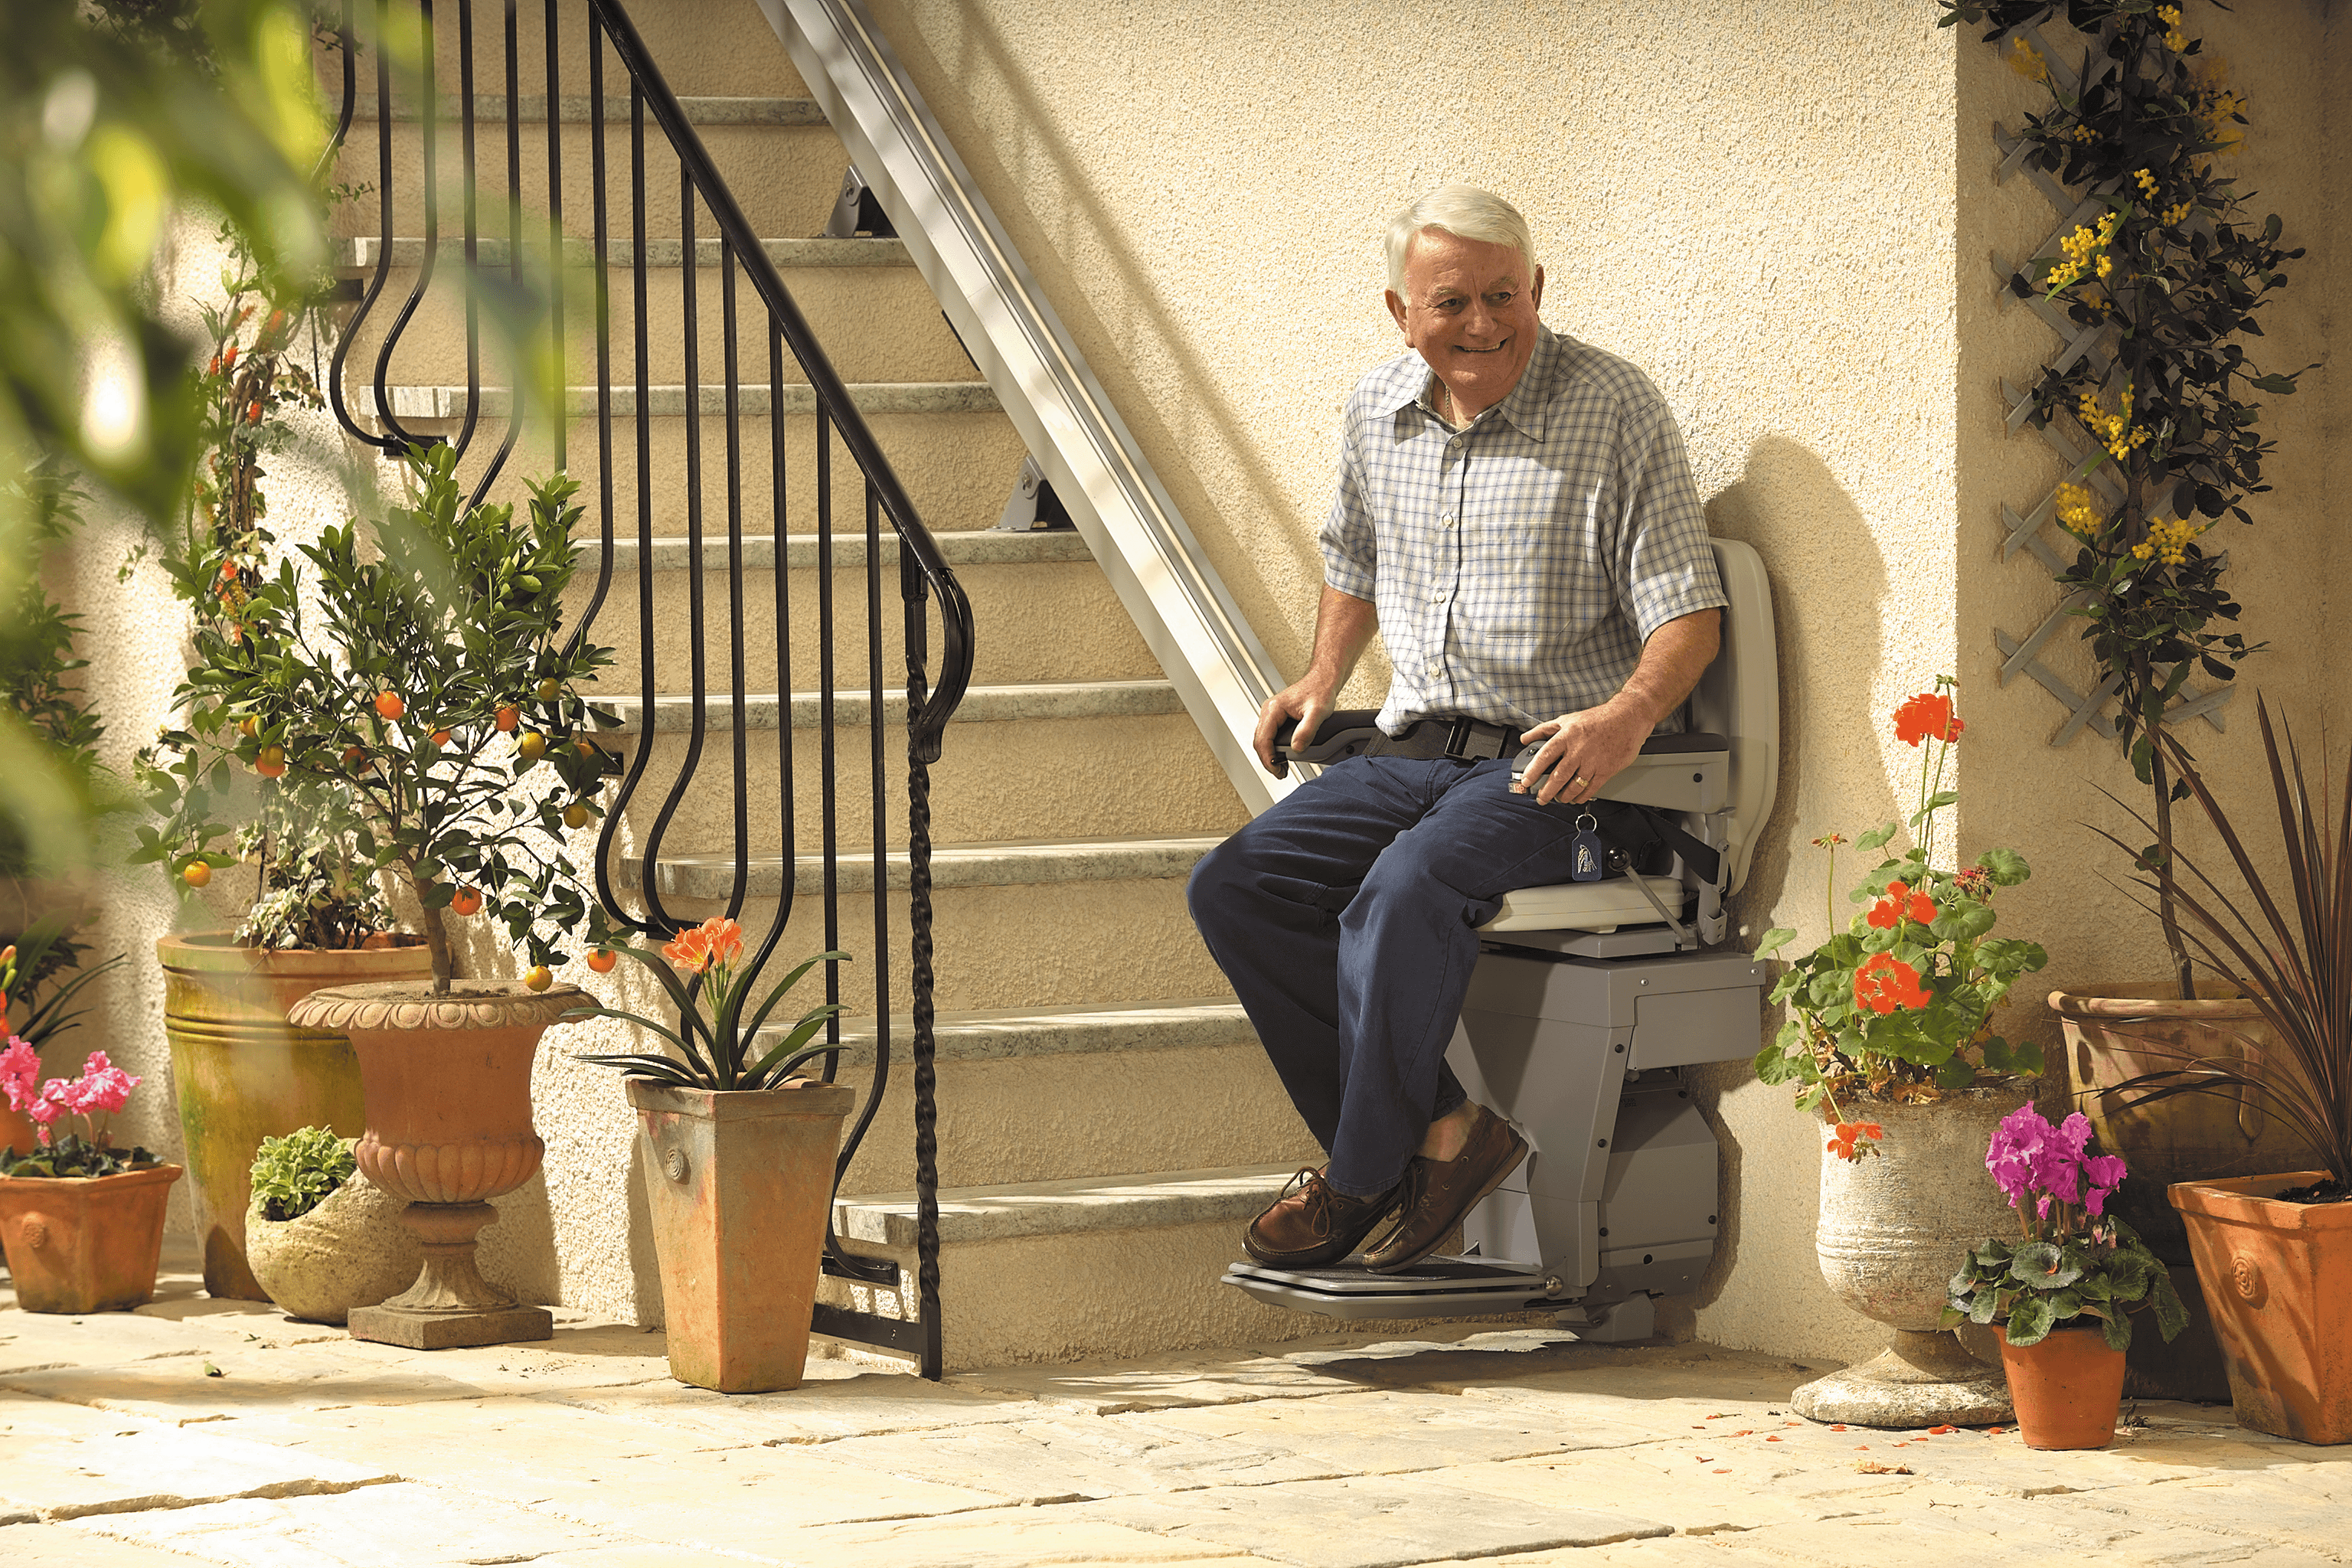 Senior man sitting on stairlift